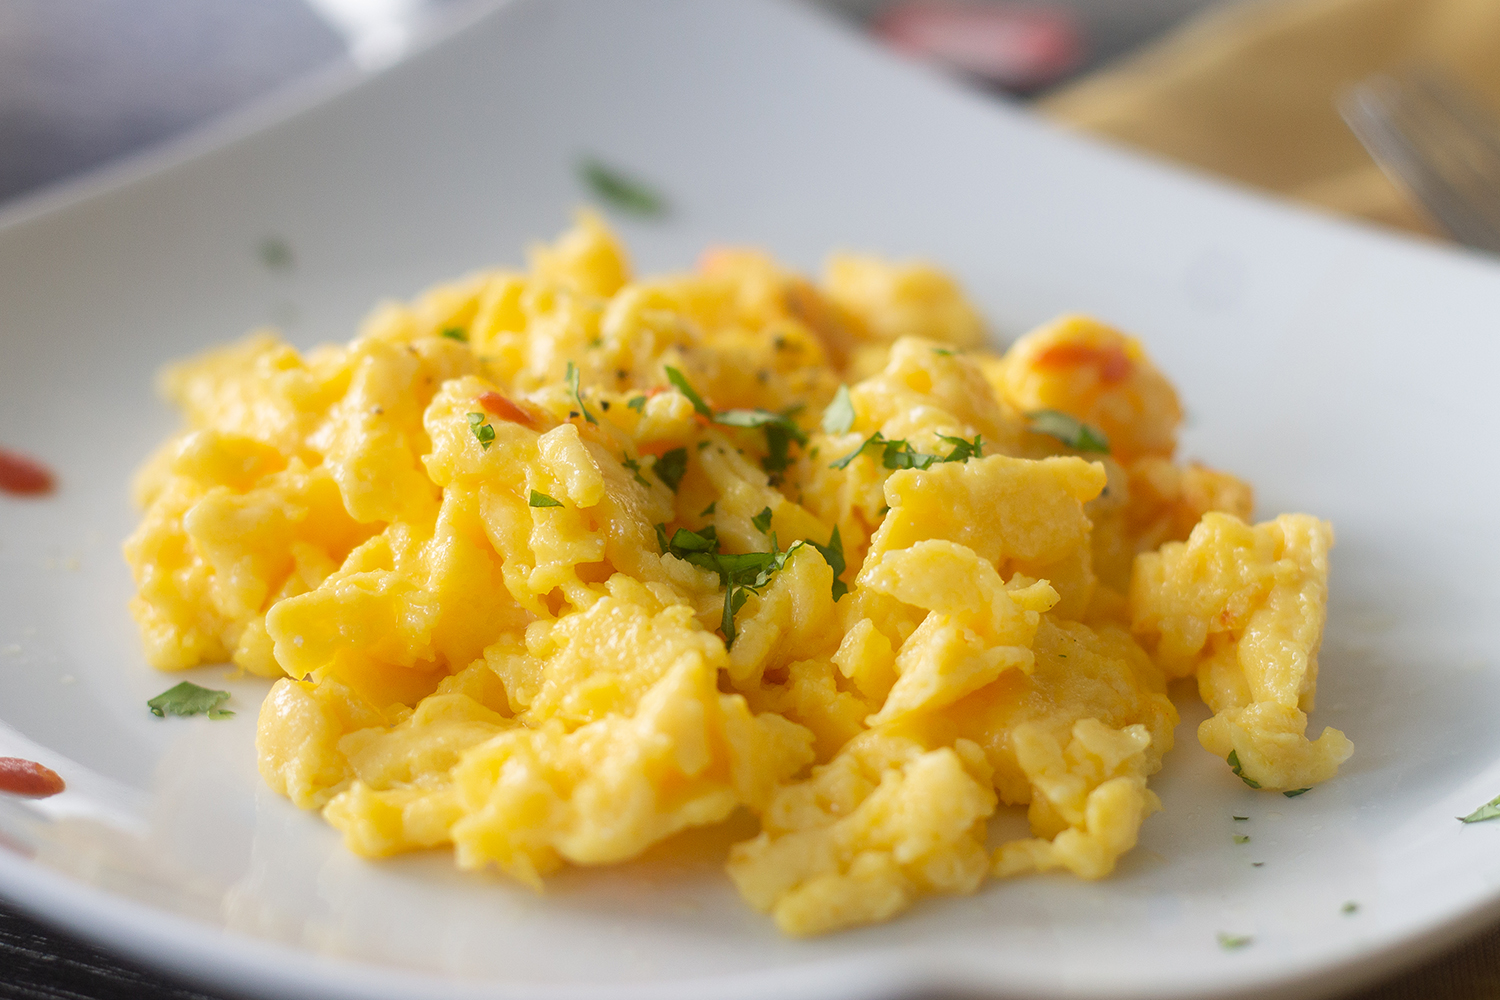 The Secret to Fluffy Scrambled Eggs